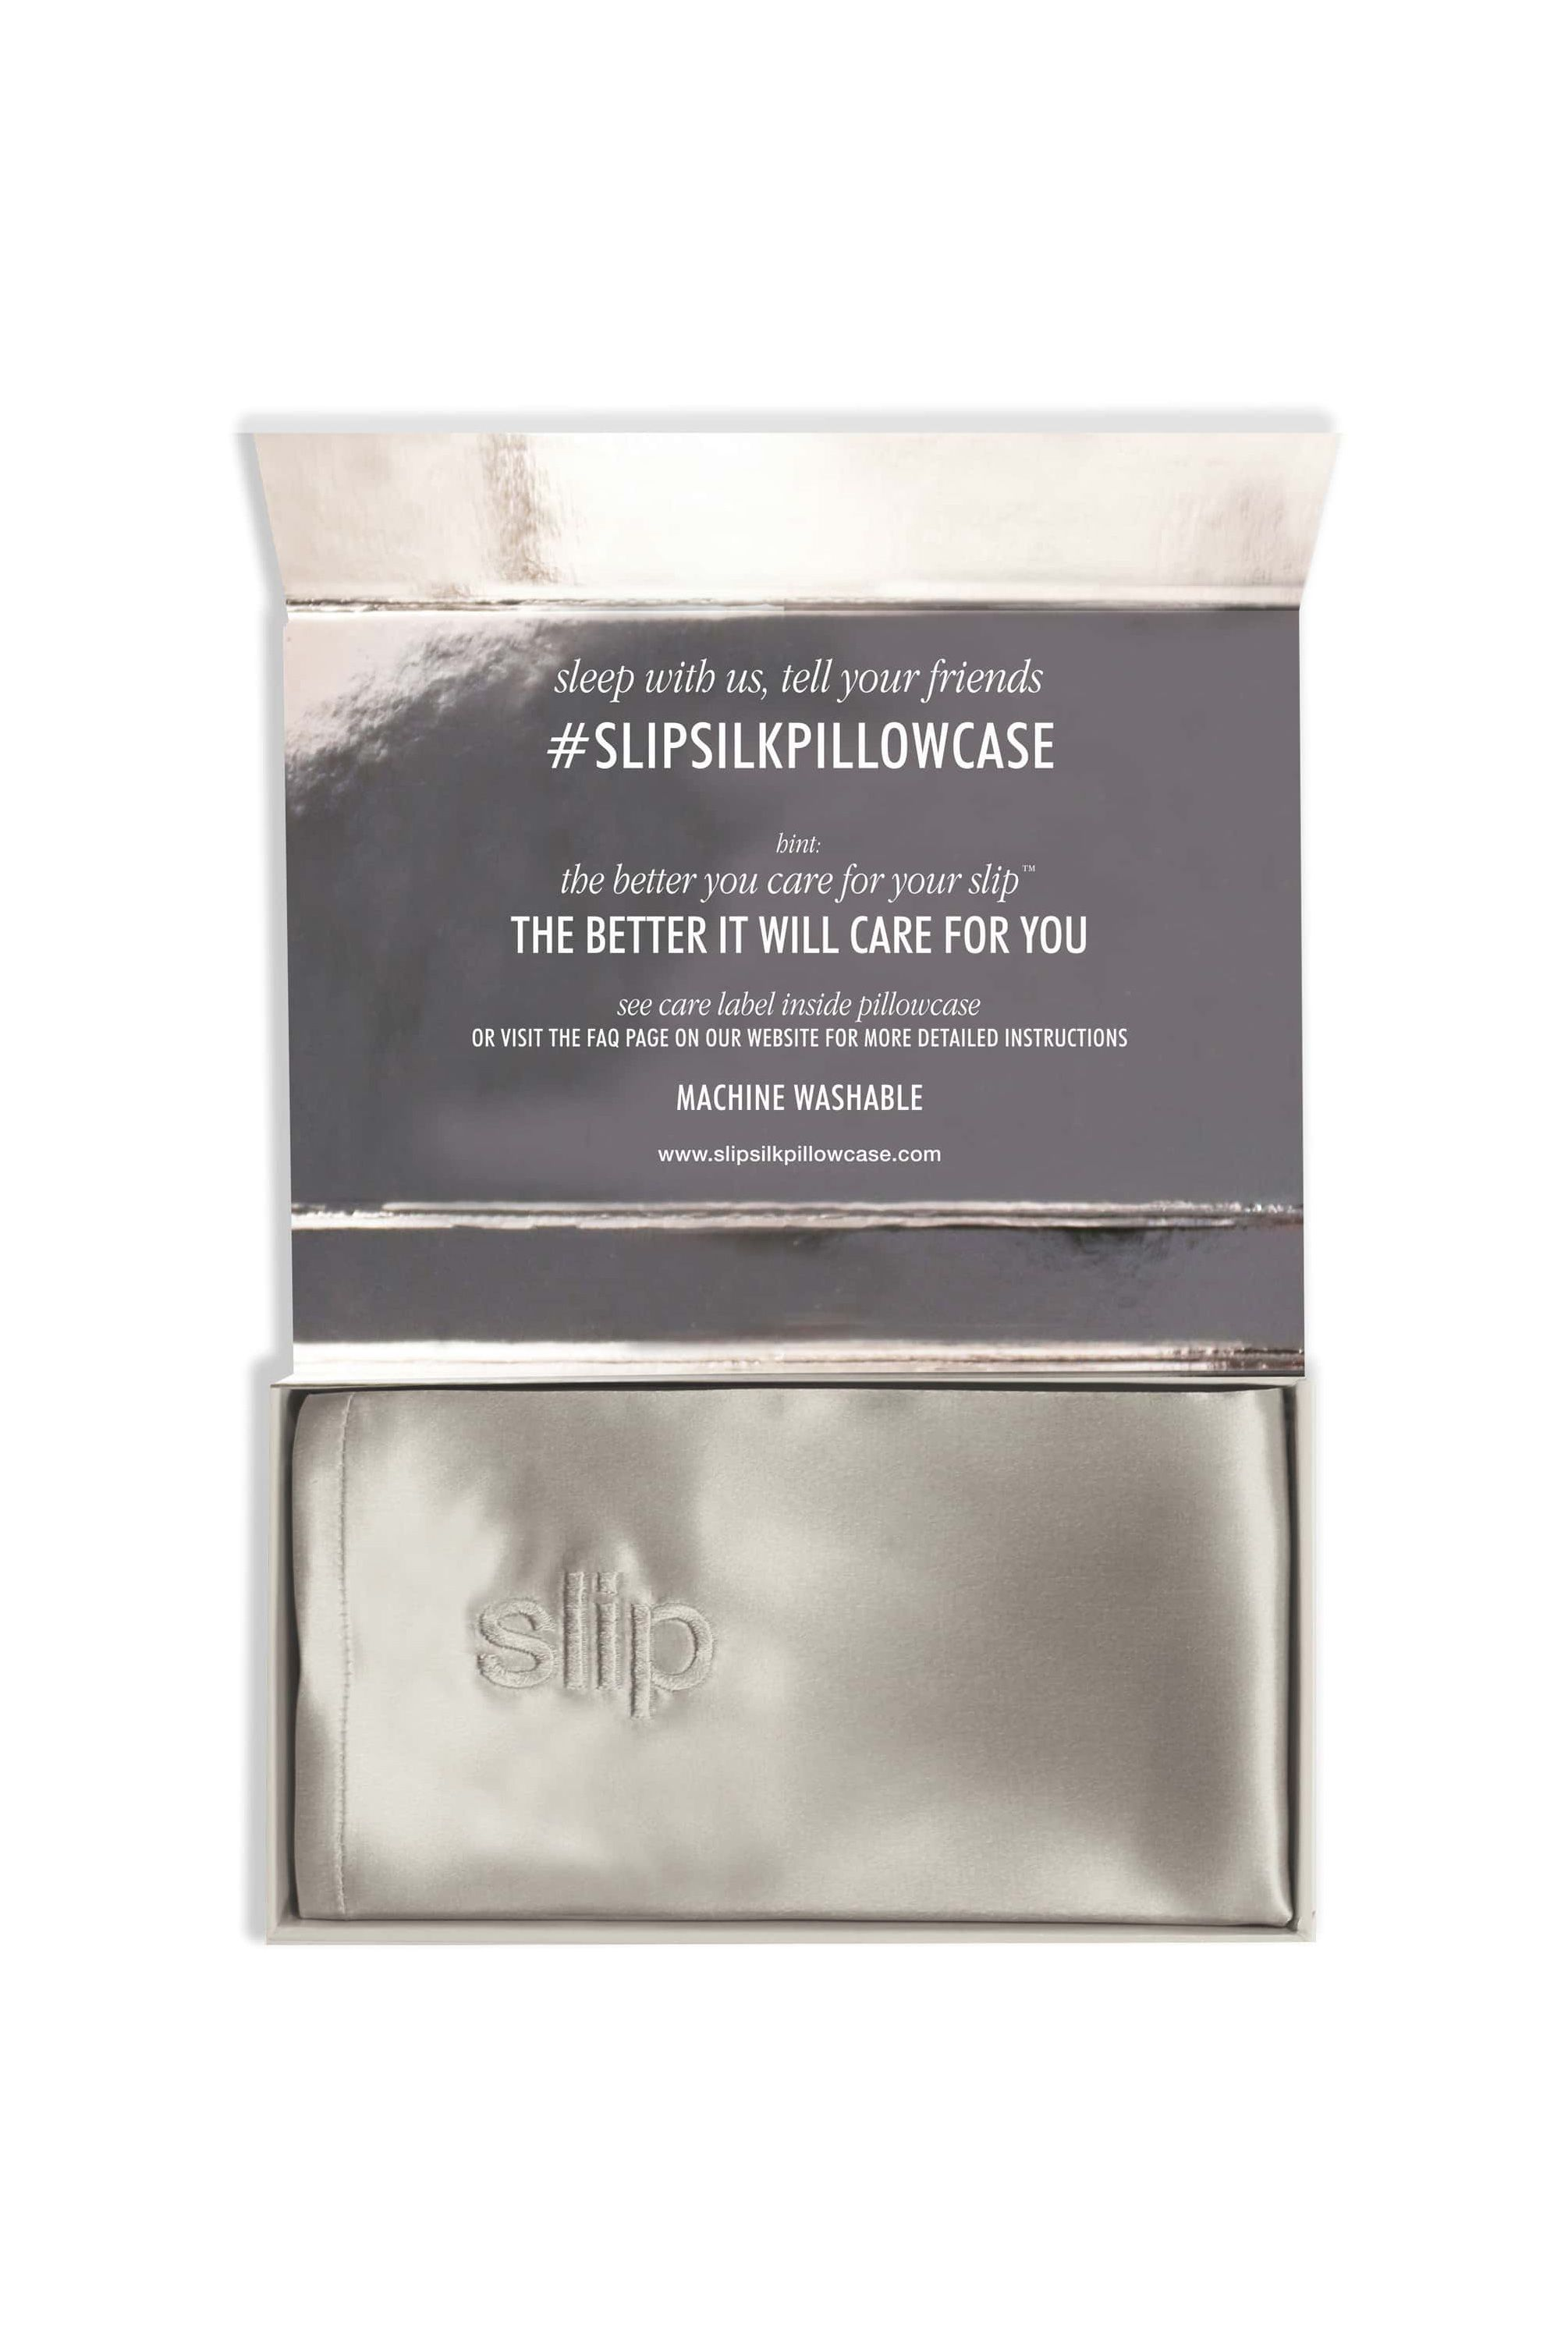 A Silk Pillowcase Slip Nordstrom $85.00 SHOP IT Even if she doesn't get eight hours of sleep every night, she can still benefit from sleeping on a silk pillowcase. This anti-aging, anti-crease, anti-bed-head pillow case by Slip is like a beauty treatment and a sleep aid in one.